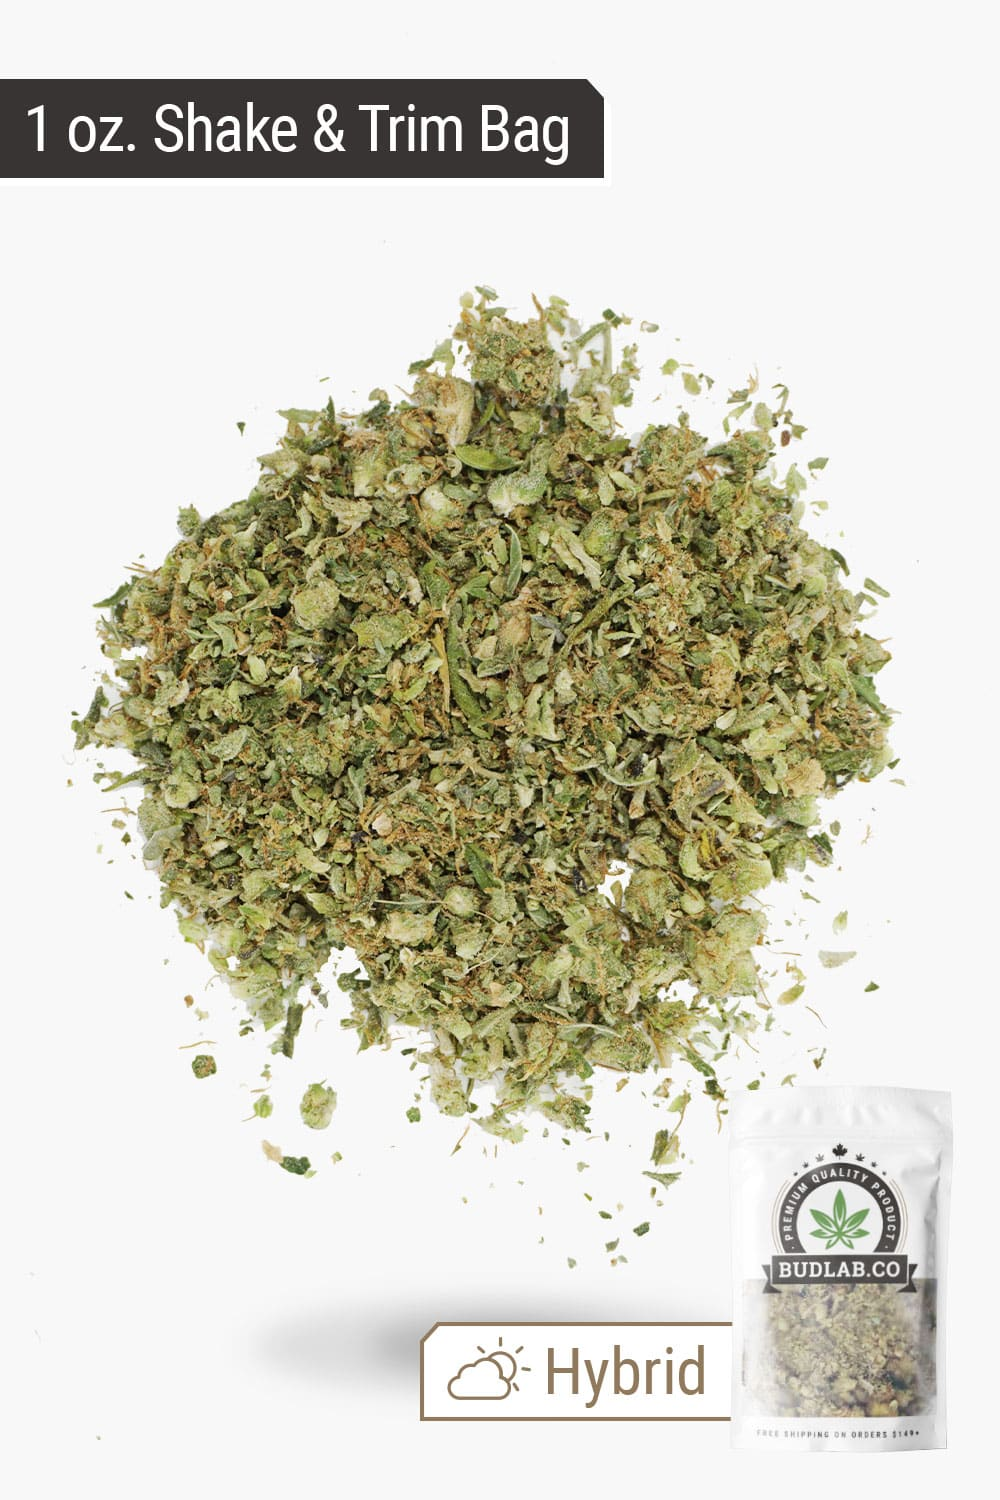 1/2 oz Shake & Trim Bag Profile Shot